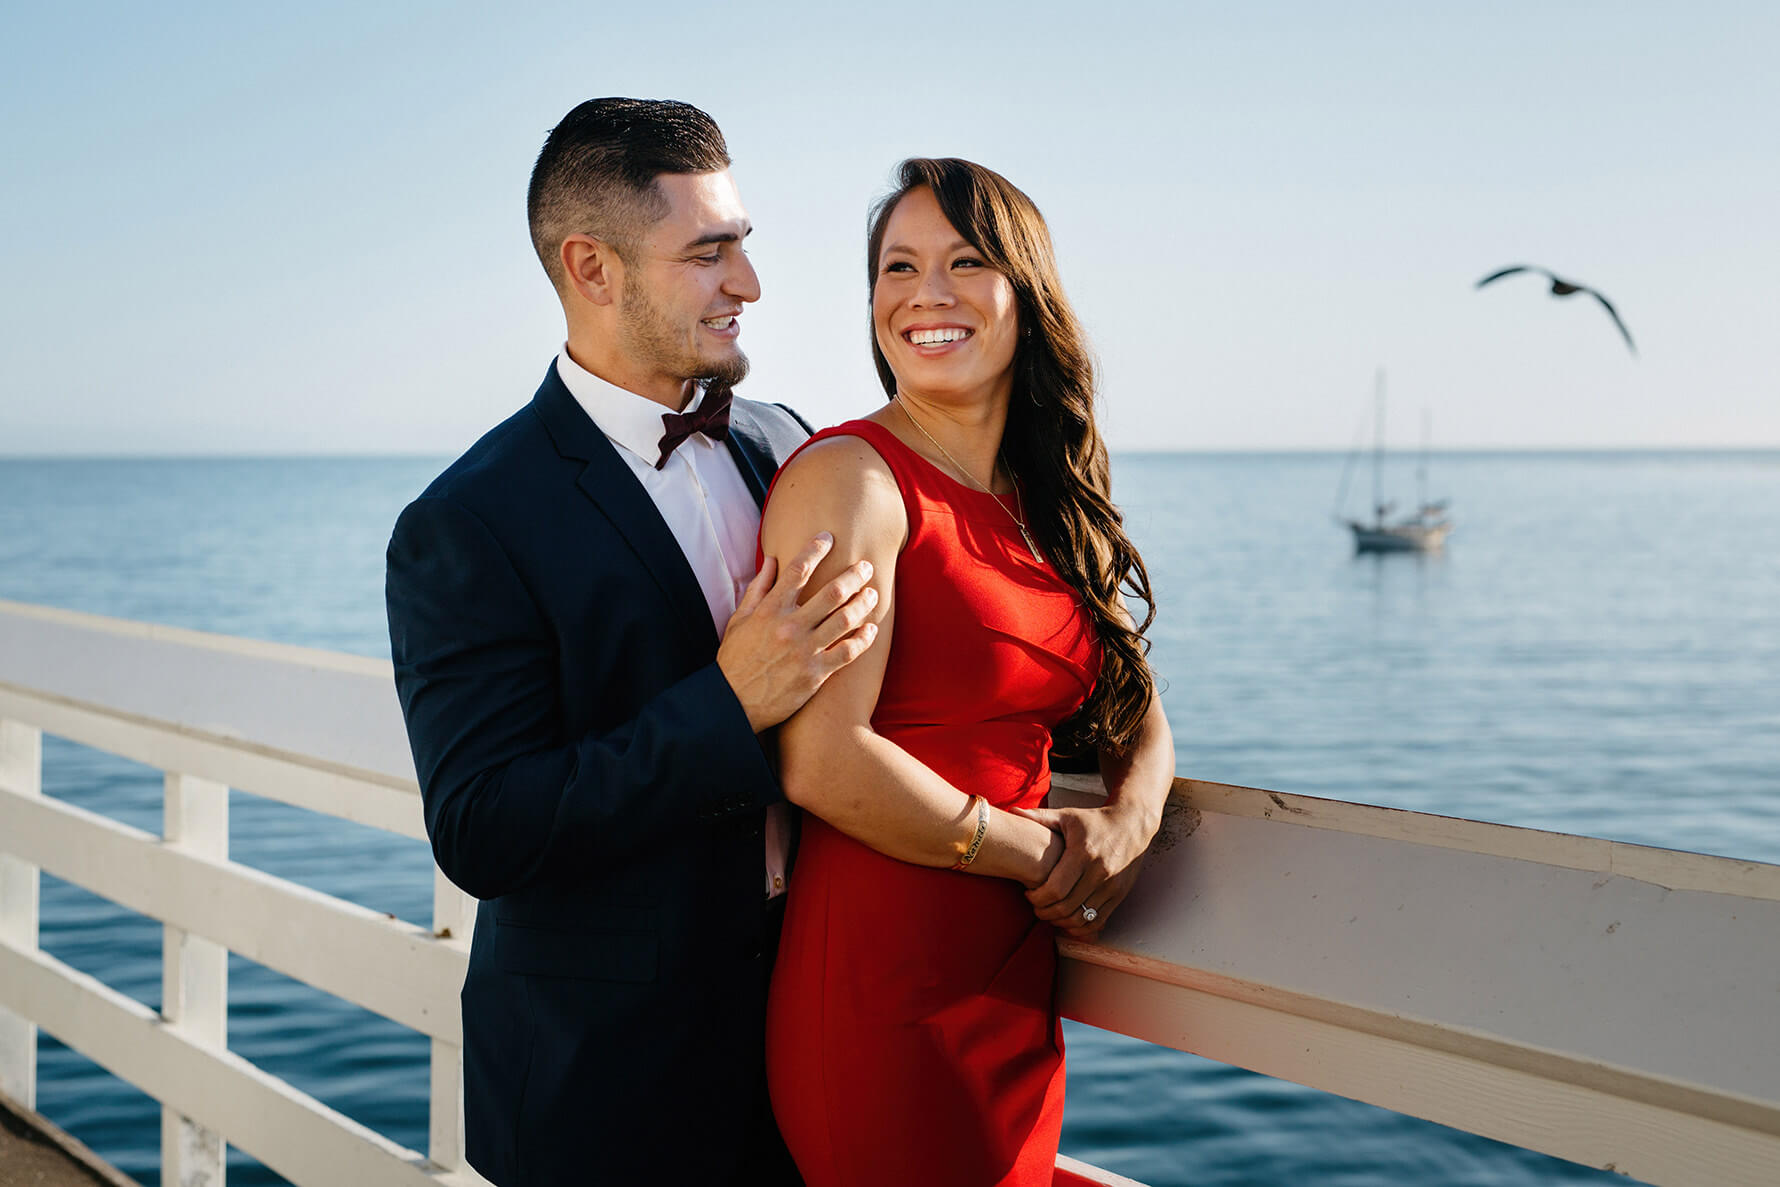 Cowell Beach Santa Cruz Destination Engagement Session | Lauren DeGracia